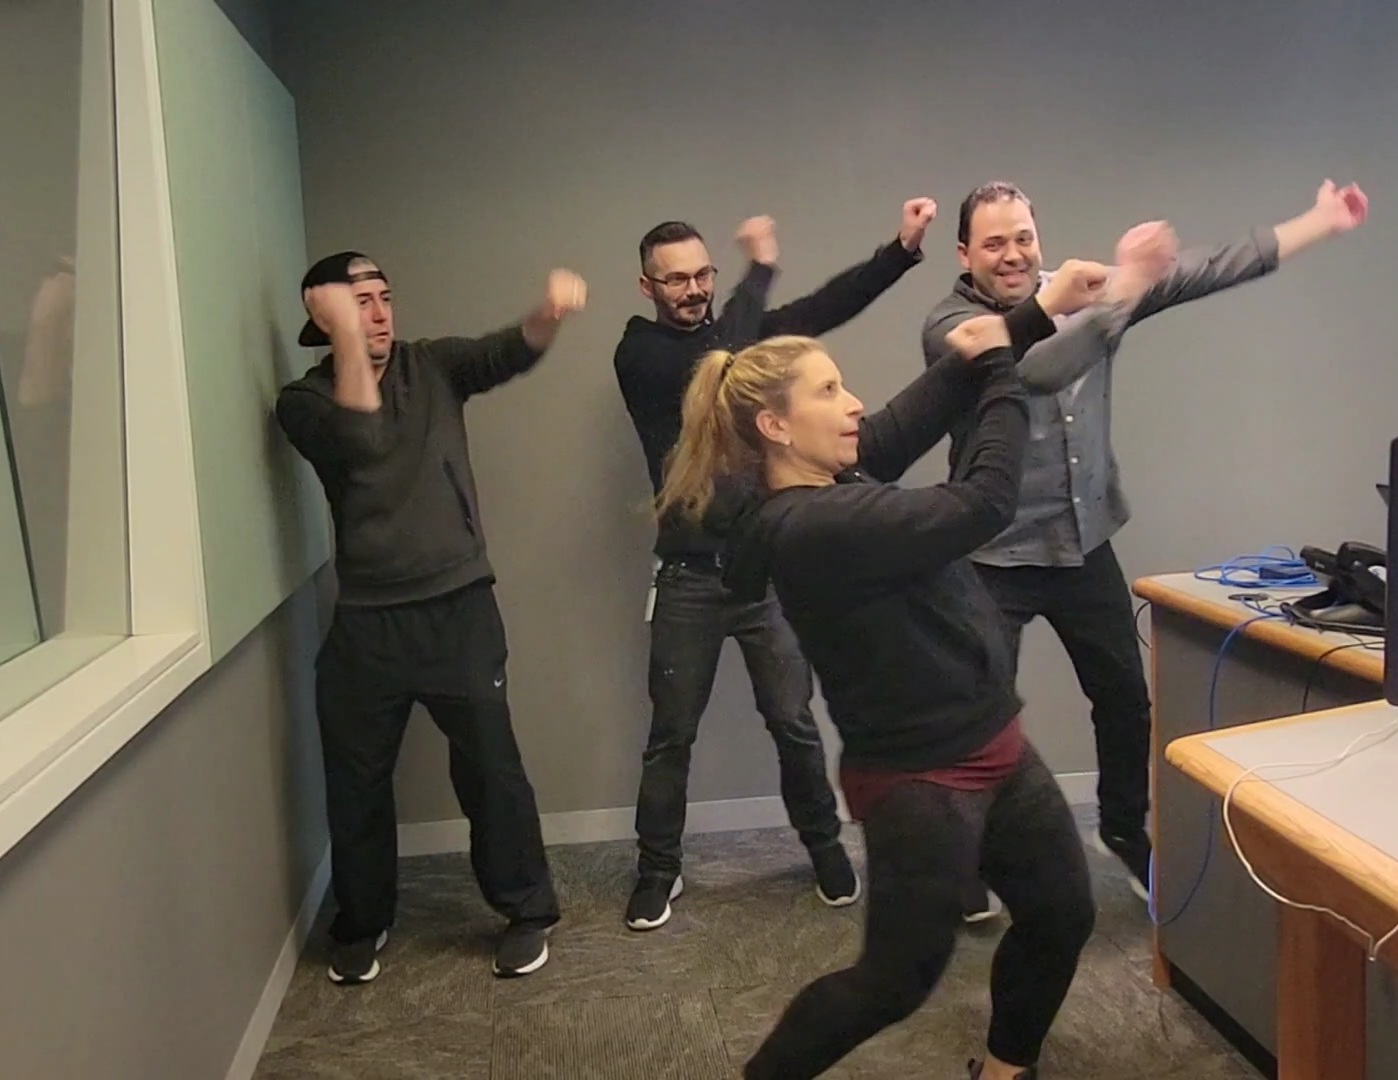 It's International Dance Day So Anna Taught The Guys A New Routine!